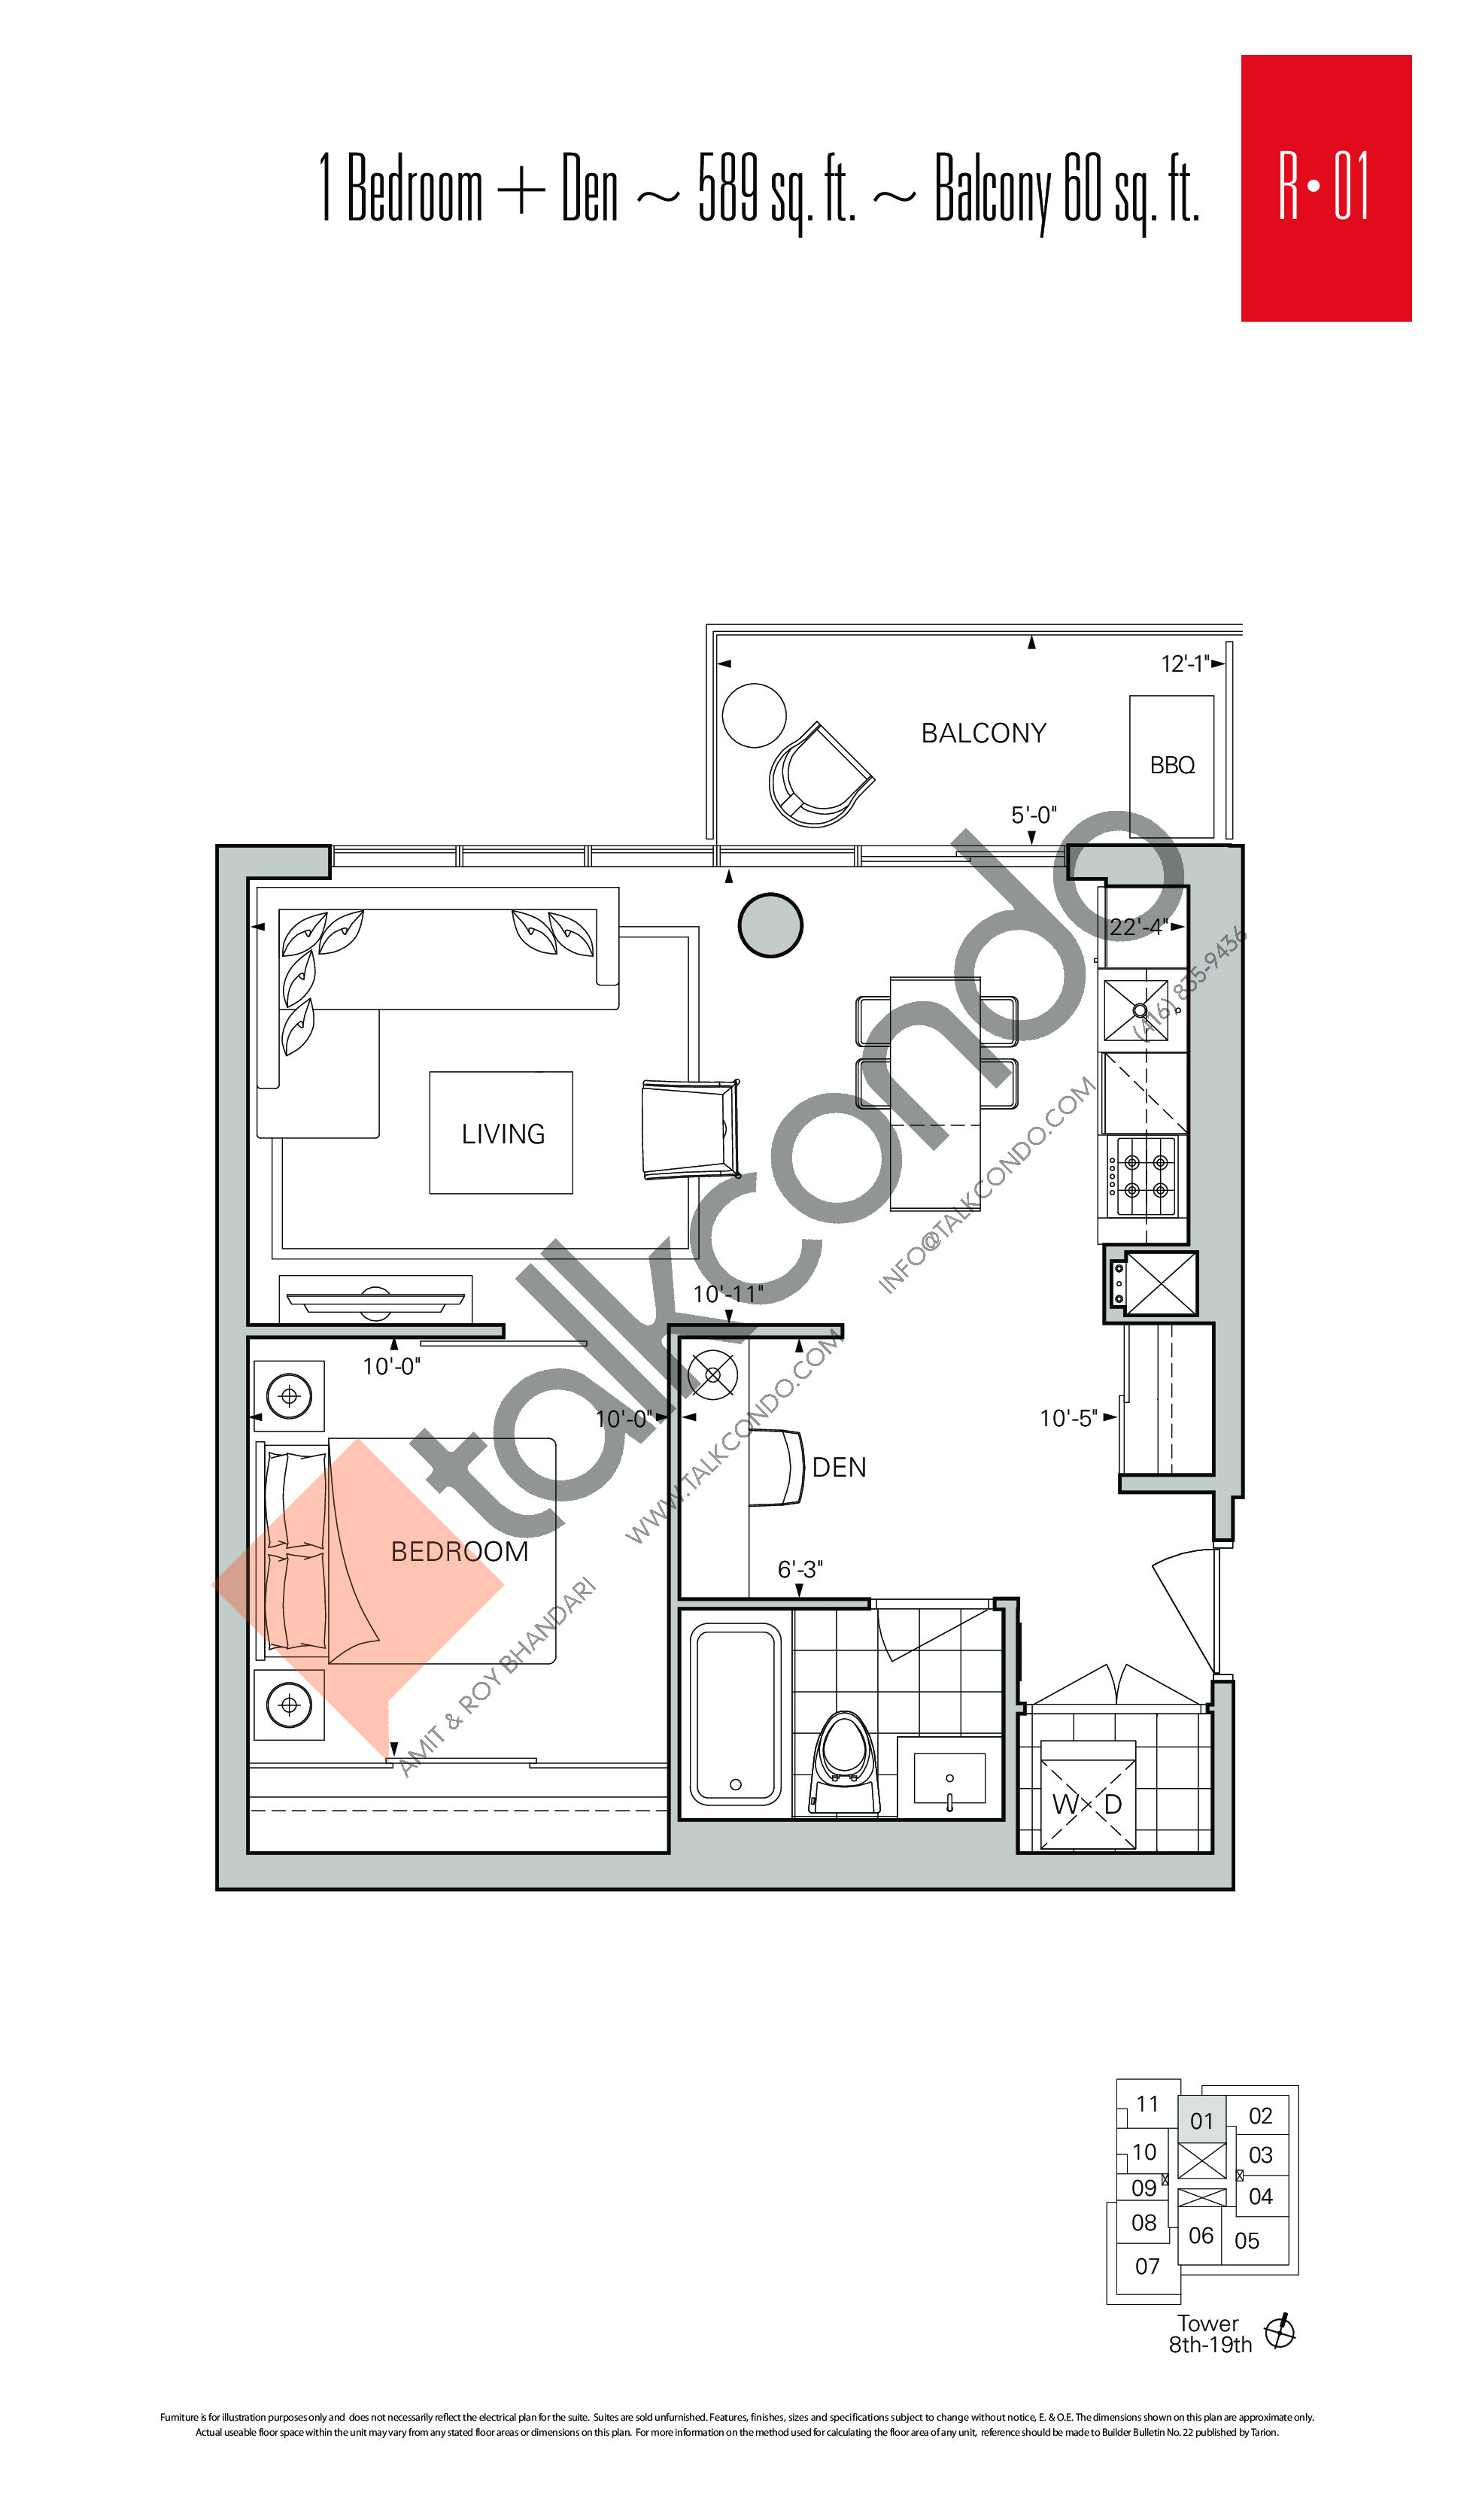 R-01 Floor Plan at Rise Condos - 589 sq.ft